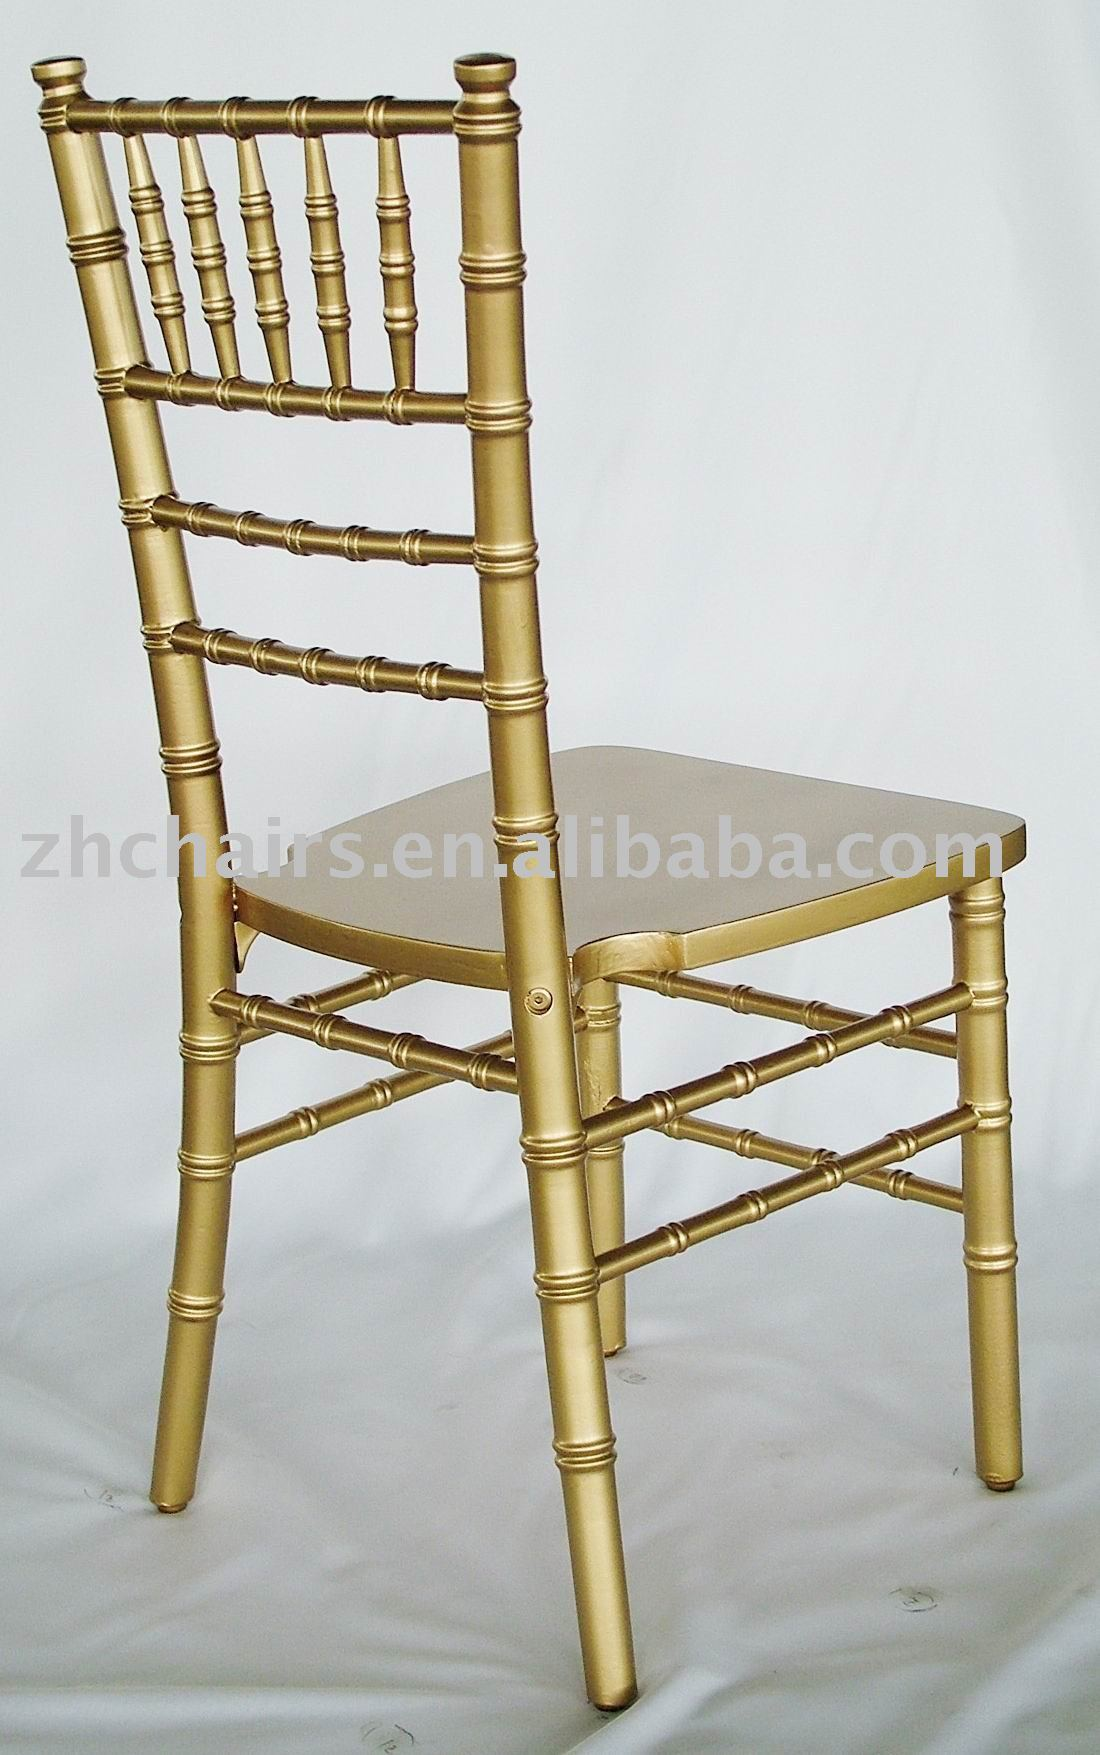 chair image wedding latest wooden of bench uk for benches linen tablecloth floor top decorations weddings decor table notch ceremony most home ideas linens rental the rentals